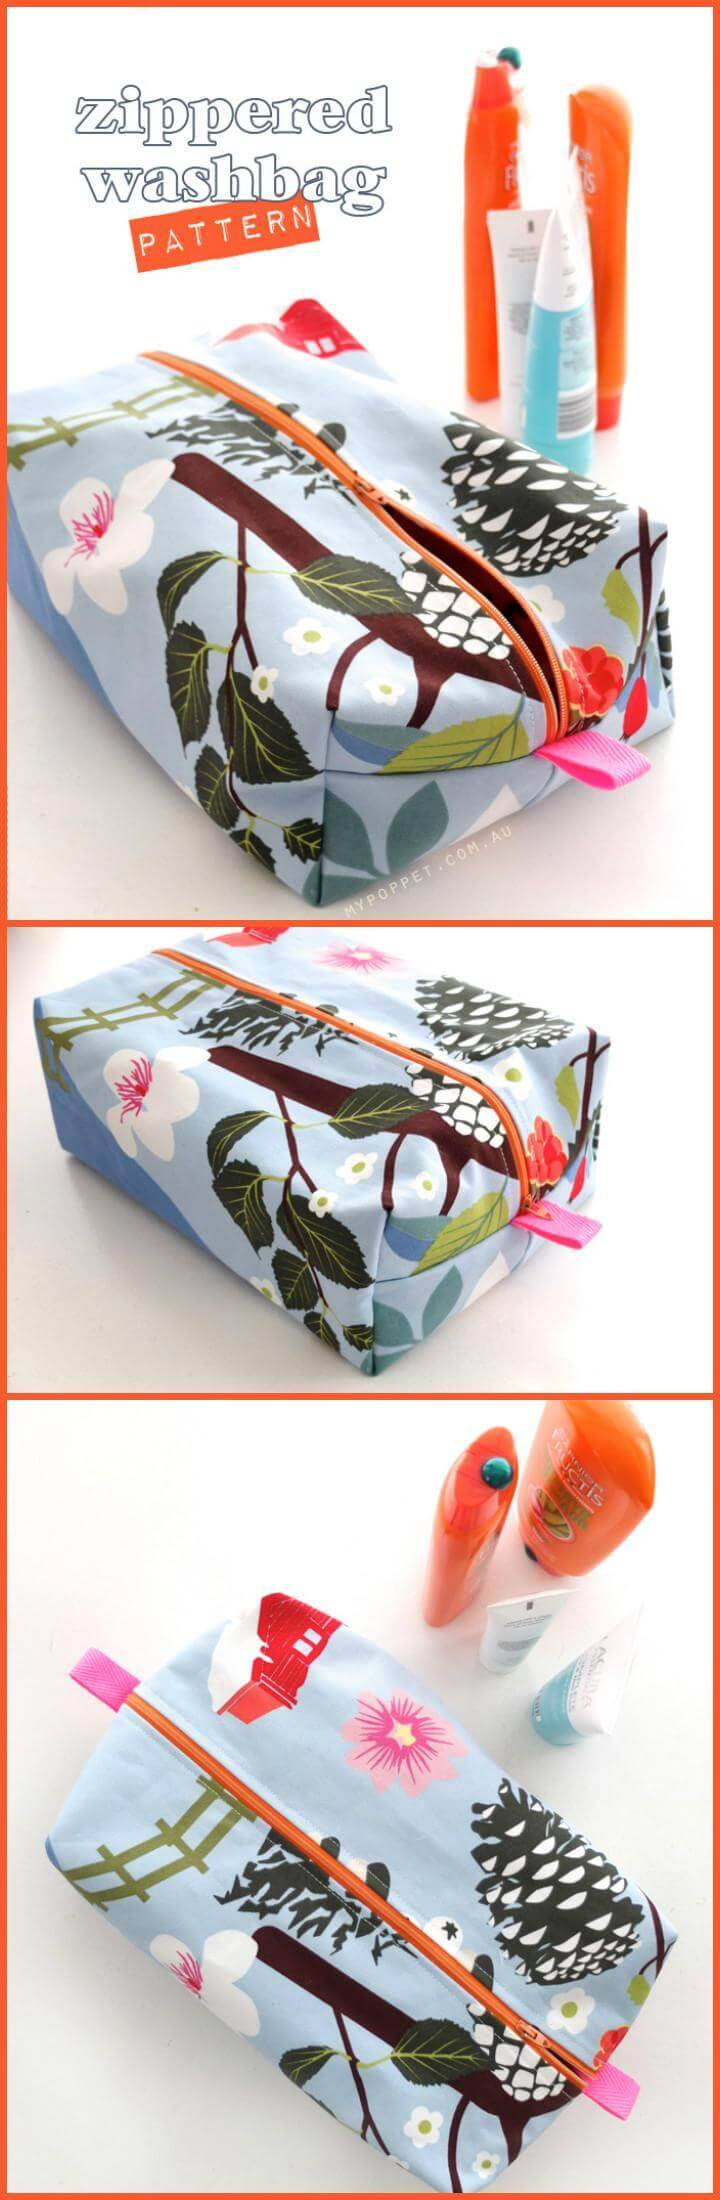 Easy Zippered Washbag Tutorial